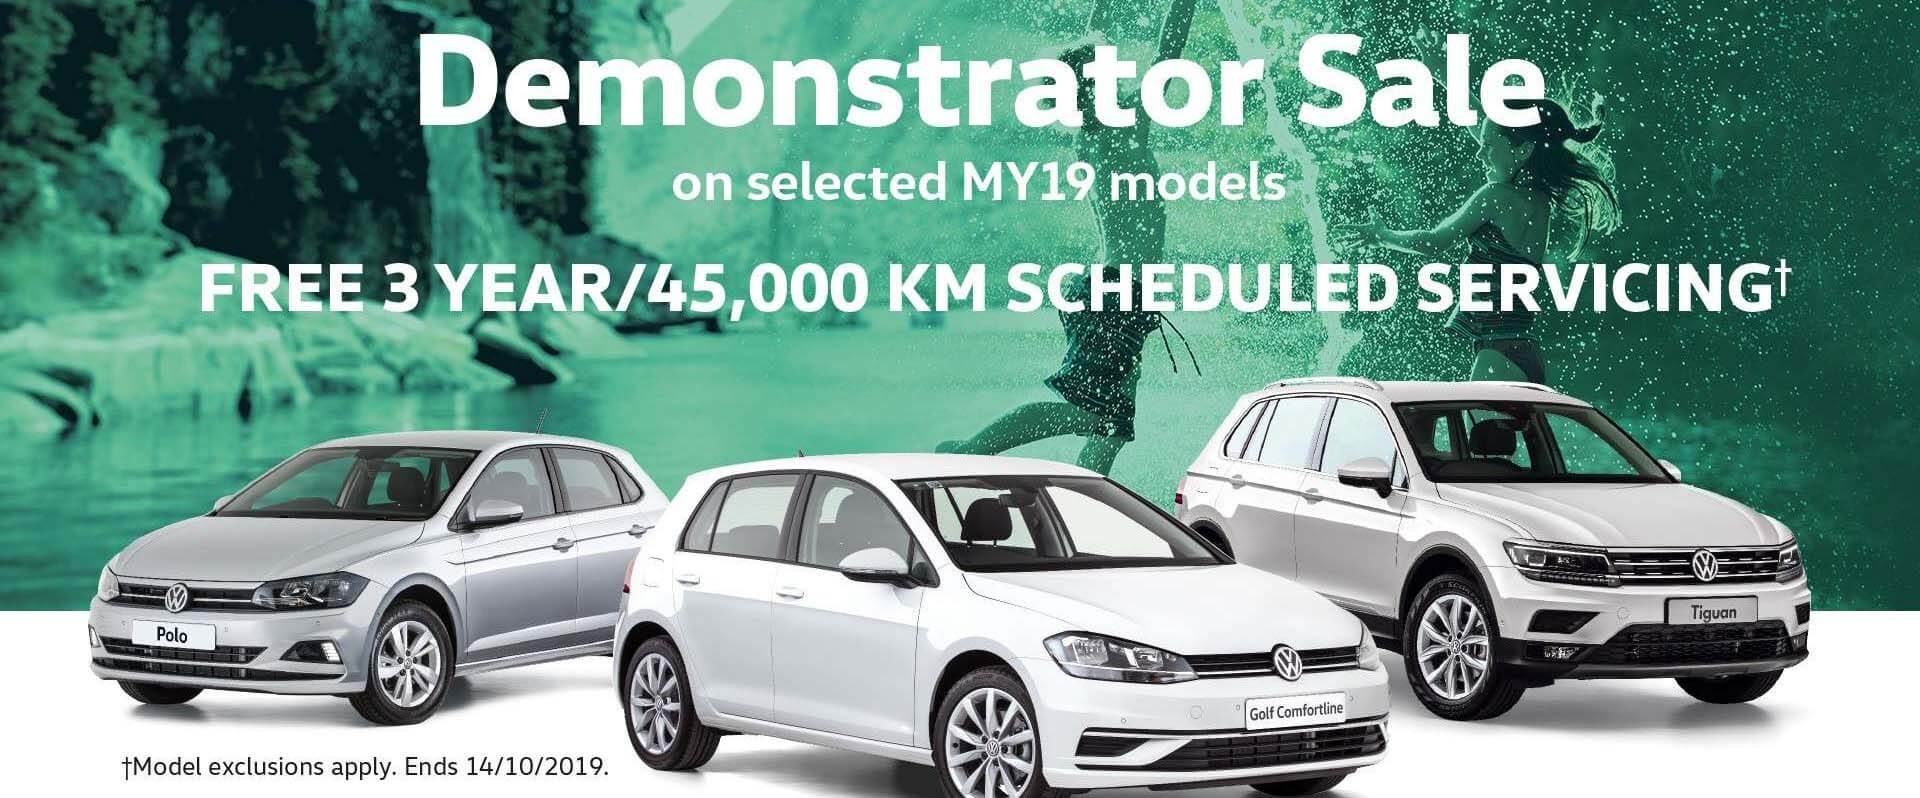 Volkswagen Demo Sale